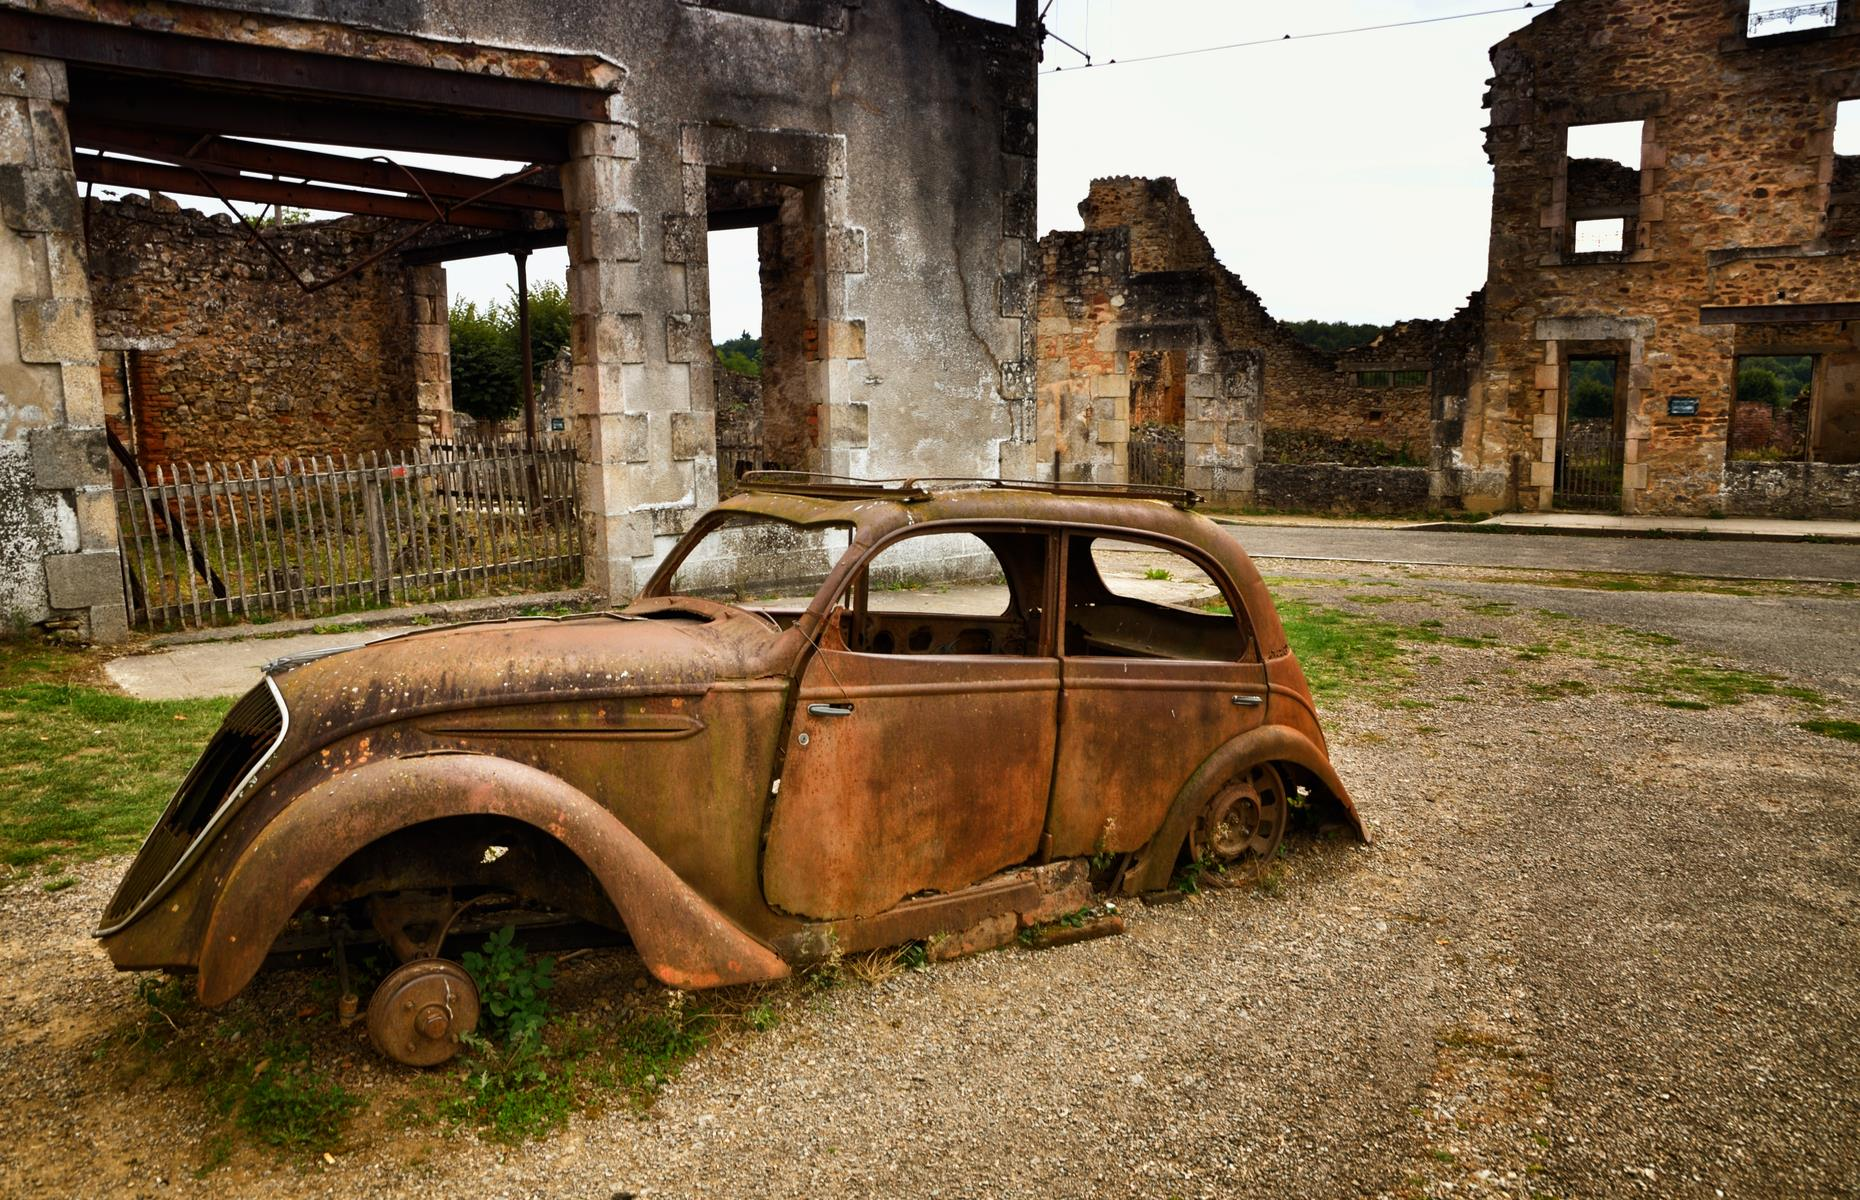 Slide 42 of 51: Three-quarters of a century later, the ghost town is a memorial to those who perished. Rusted cars, including the Peugeot 202 the mayor drove before his brutal death, still sit on the roads. Discover the incredible pictures of tourist attractions that no longer exist.